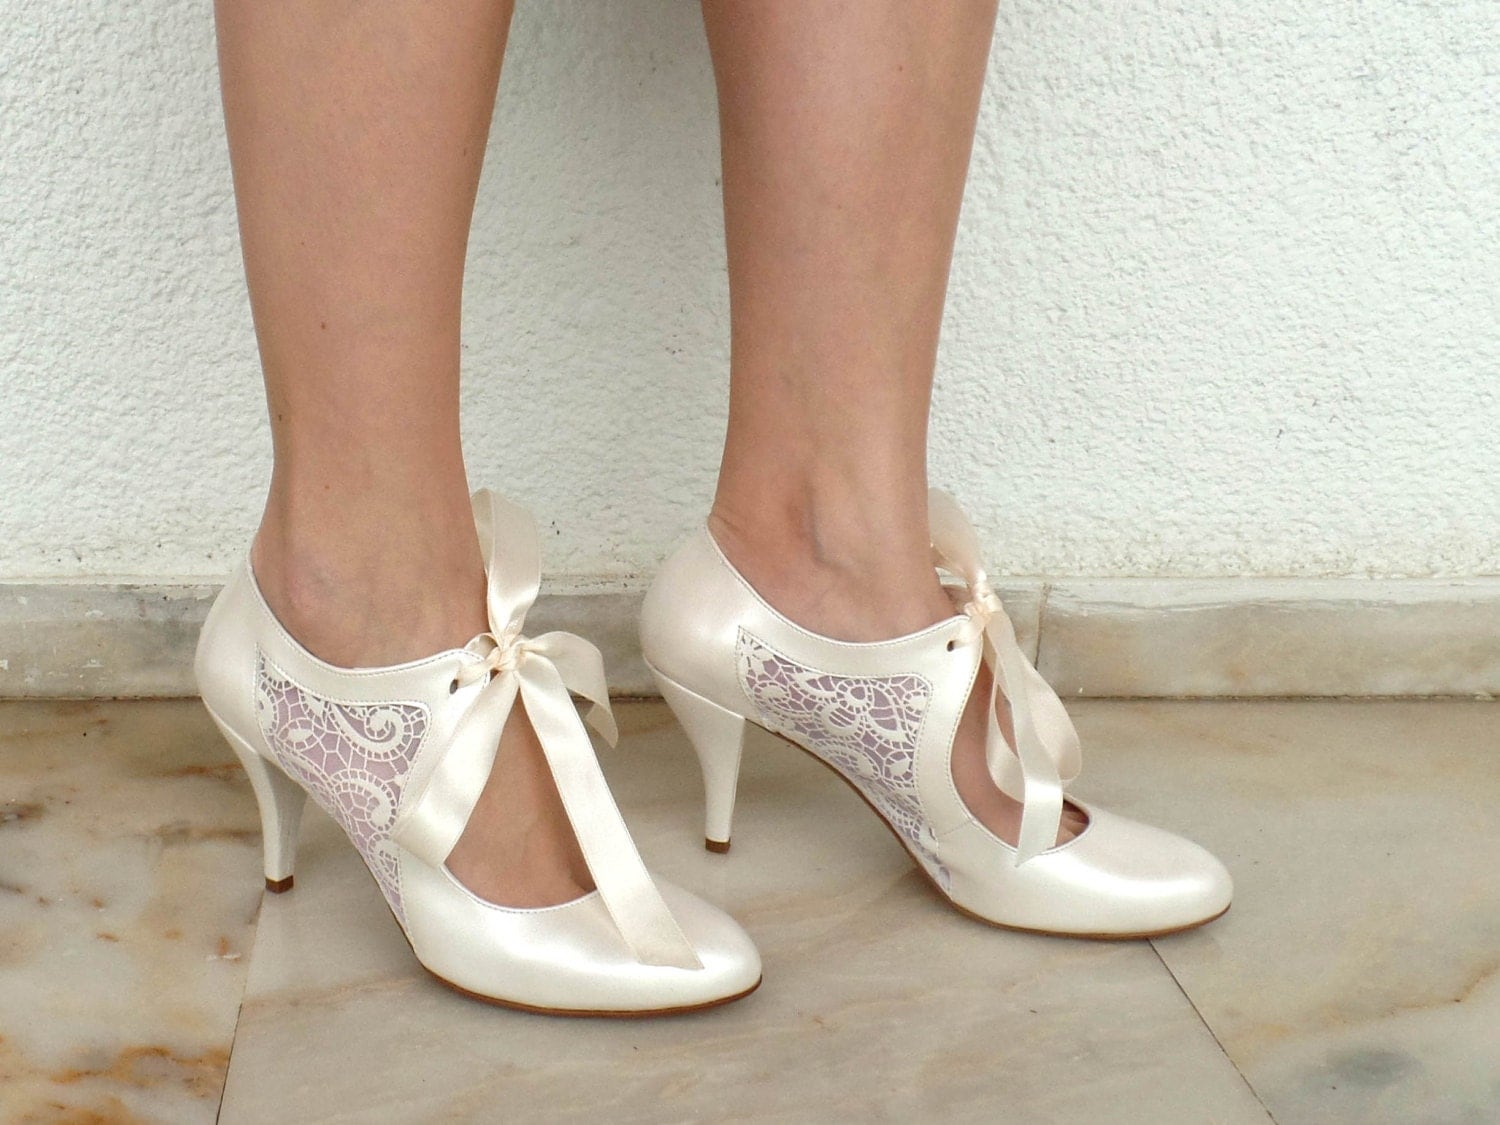 Wedding High Heels Ivory: Wedding Shoes Bridal Shoes With Ivory Lace By